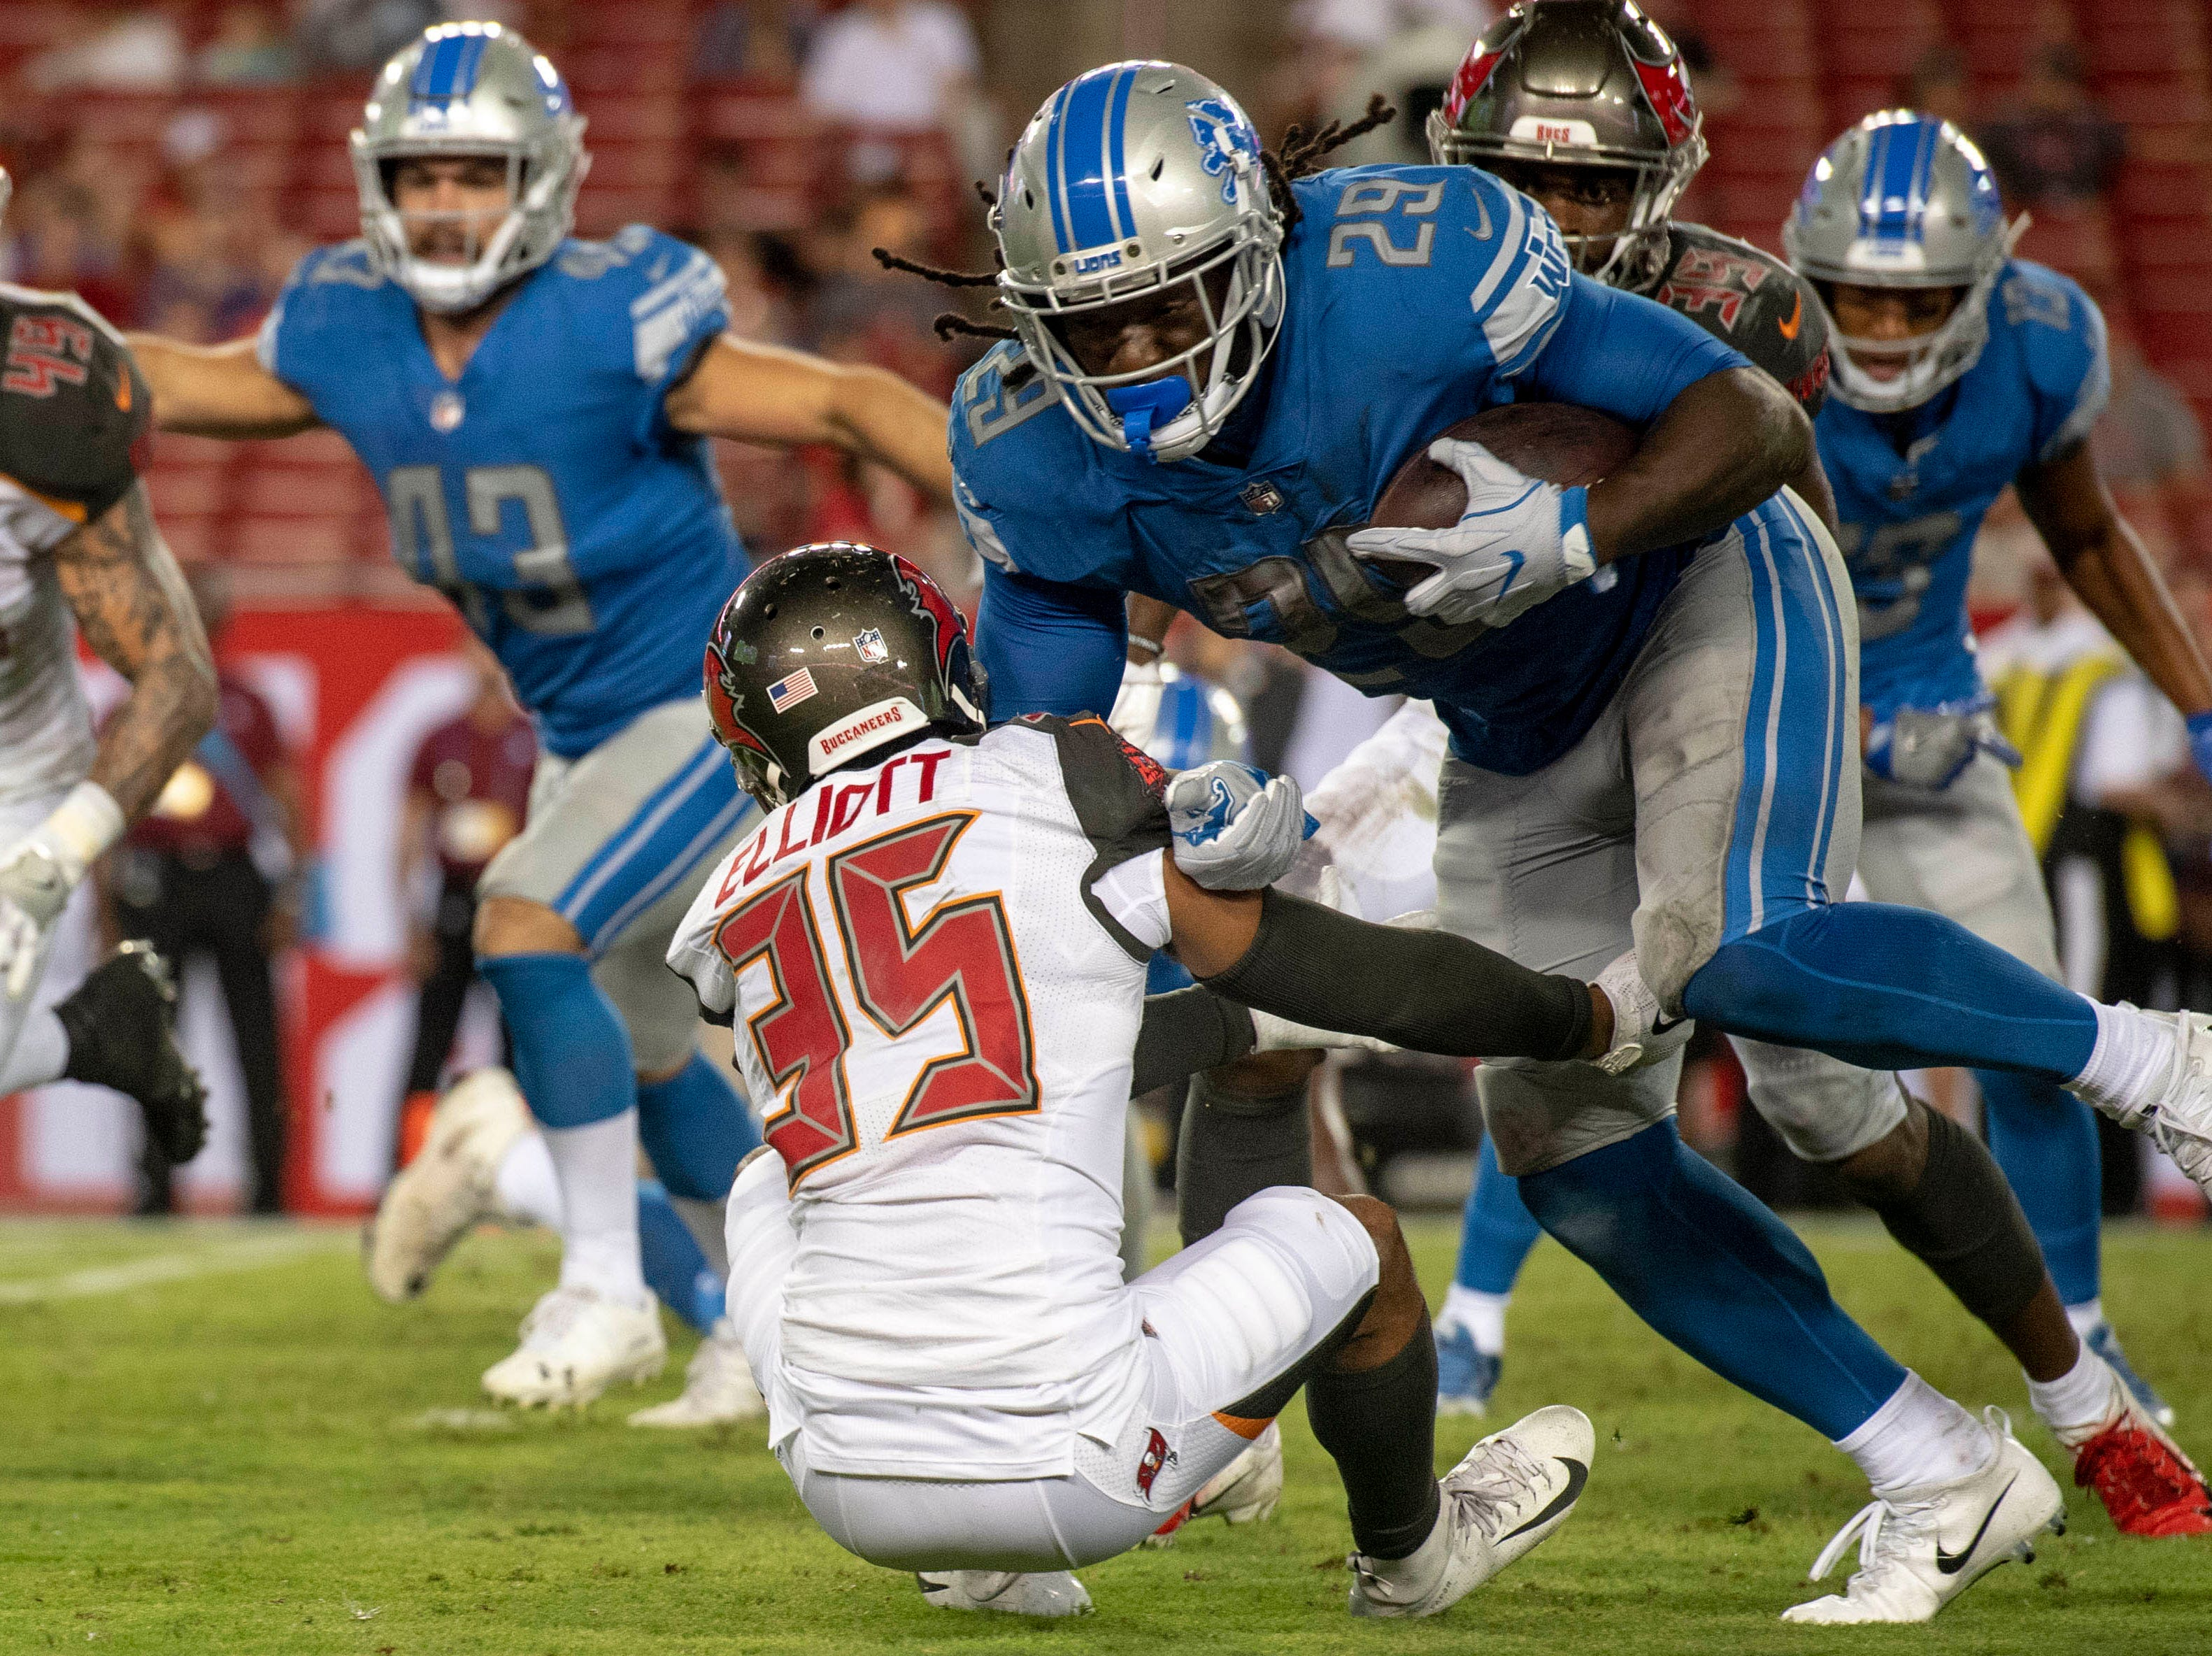 Detroit Lions running back Theo Riddick (25) runs overTampa Bay Buccaneers corner back Javien Elliott (35) during the second half at Raymond James Stadium.